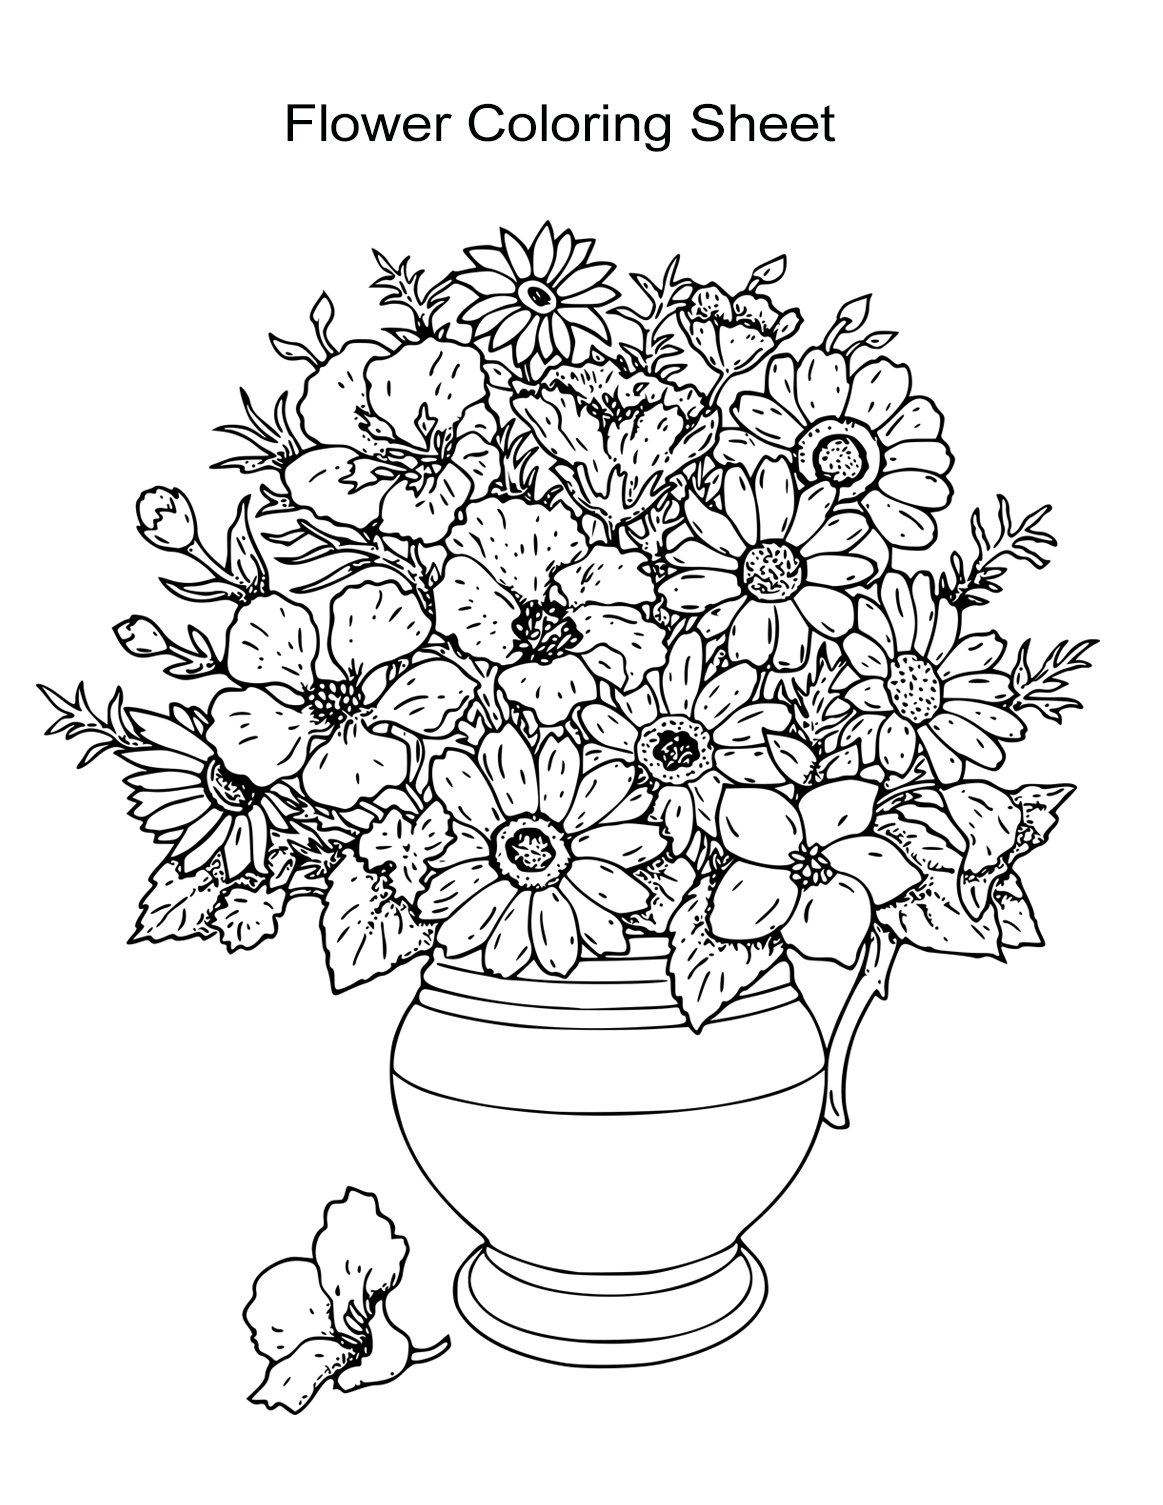 10 Flower Coloring Sheets for Girls and Boys: Free ...